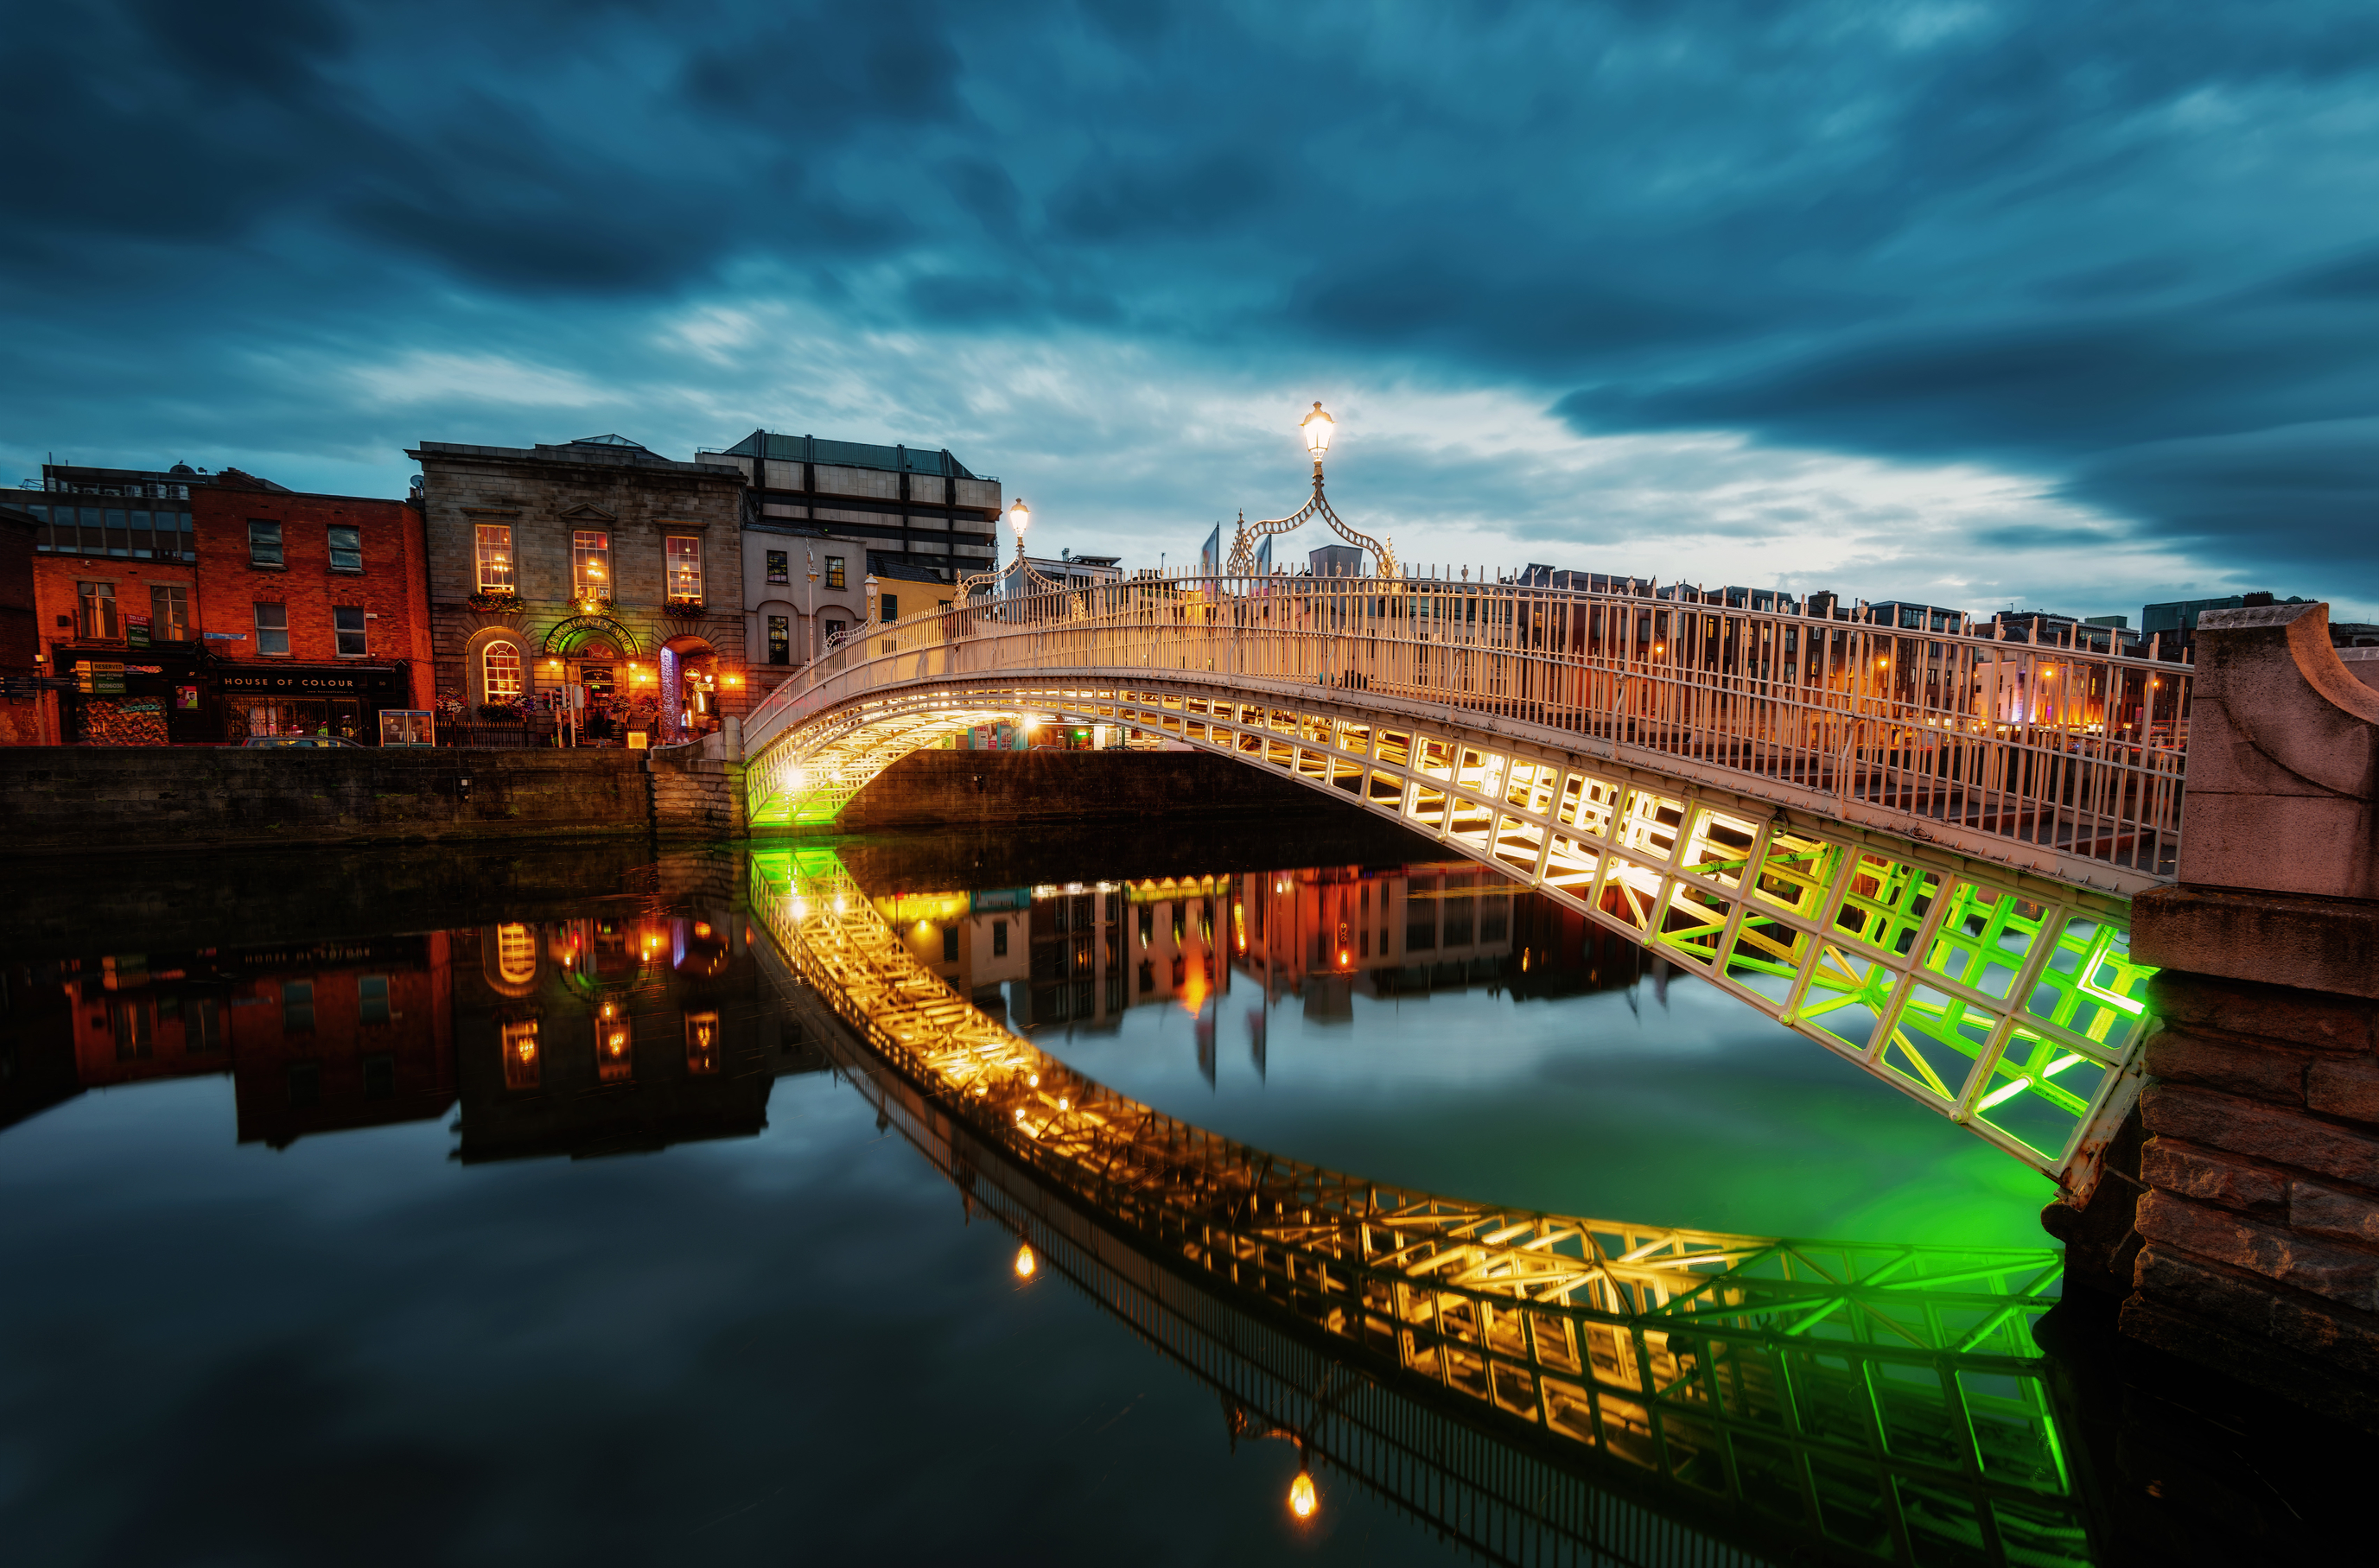 Ha-penny-Bridge-Dublin-night.jpg?mtime=20190107220529#asset:104377